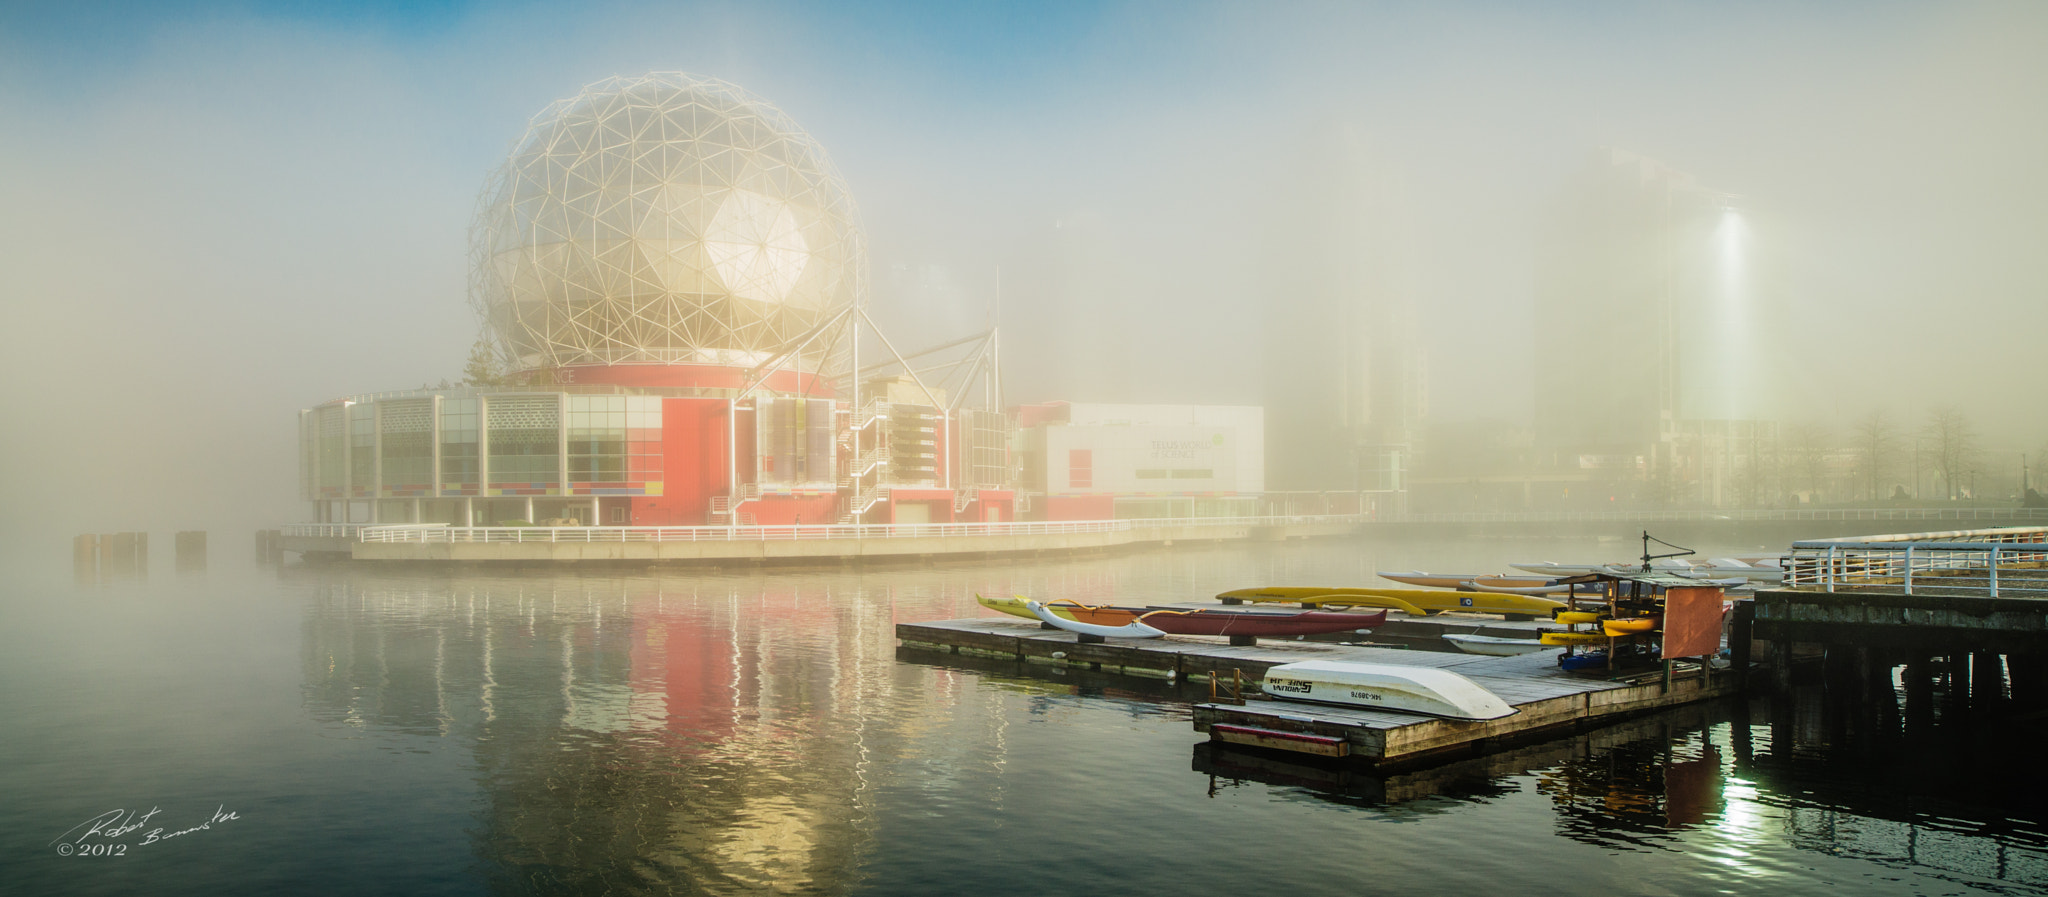 Photograph Science world in the mist by Rob Bannister on 500px